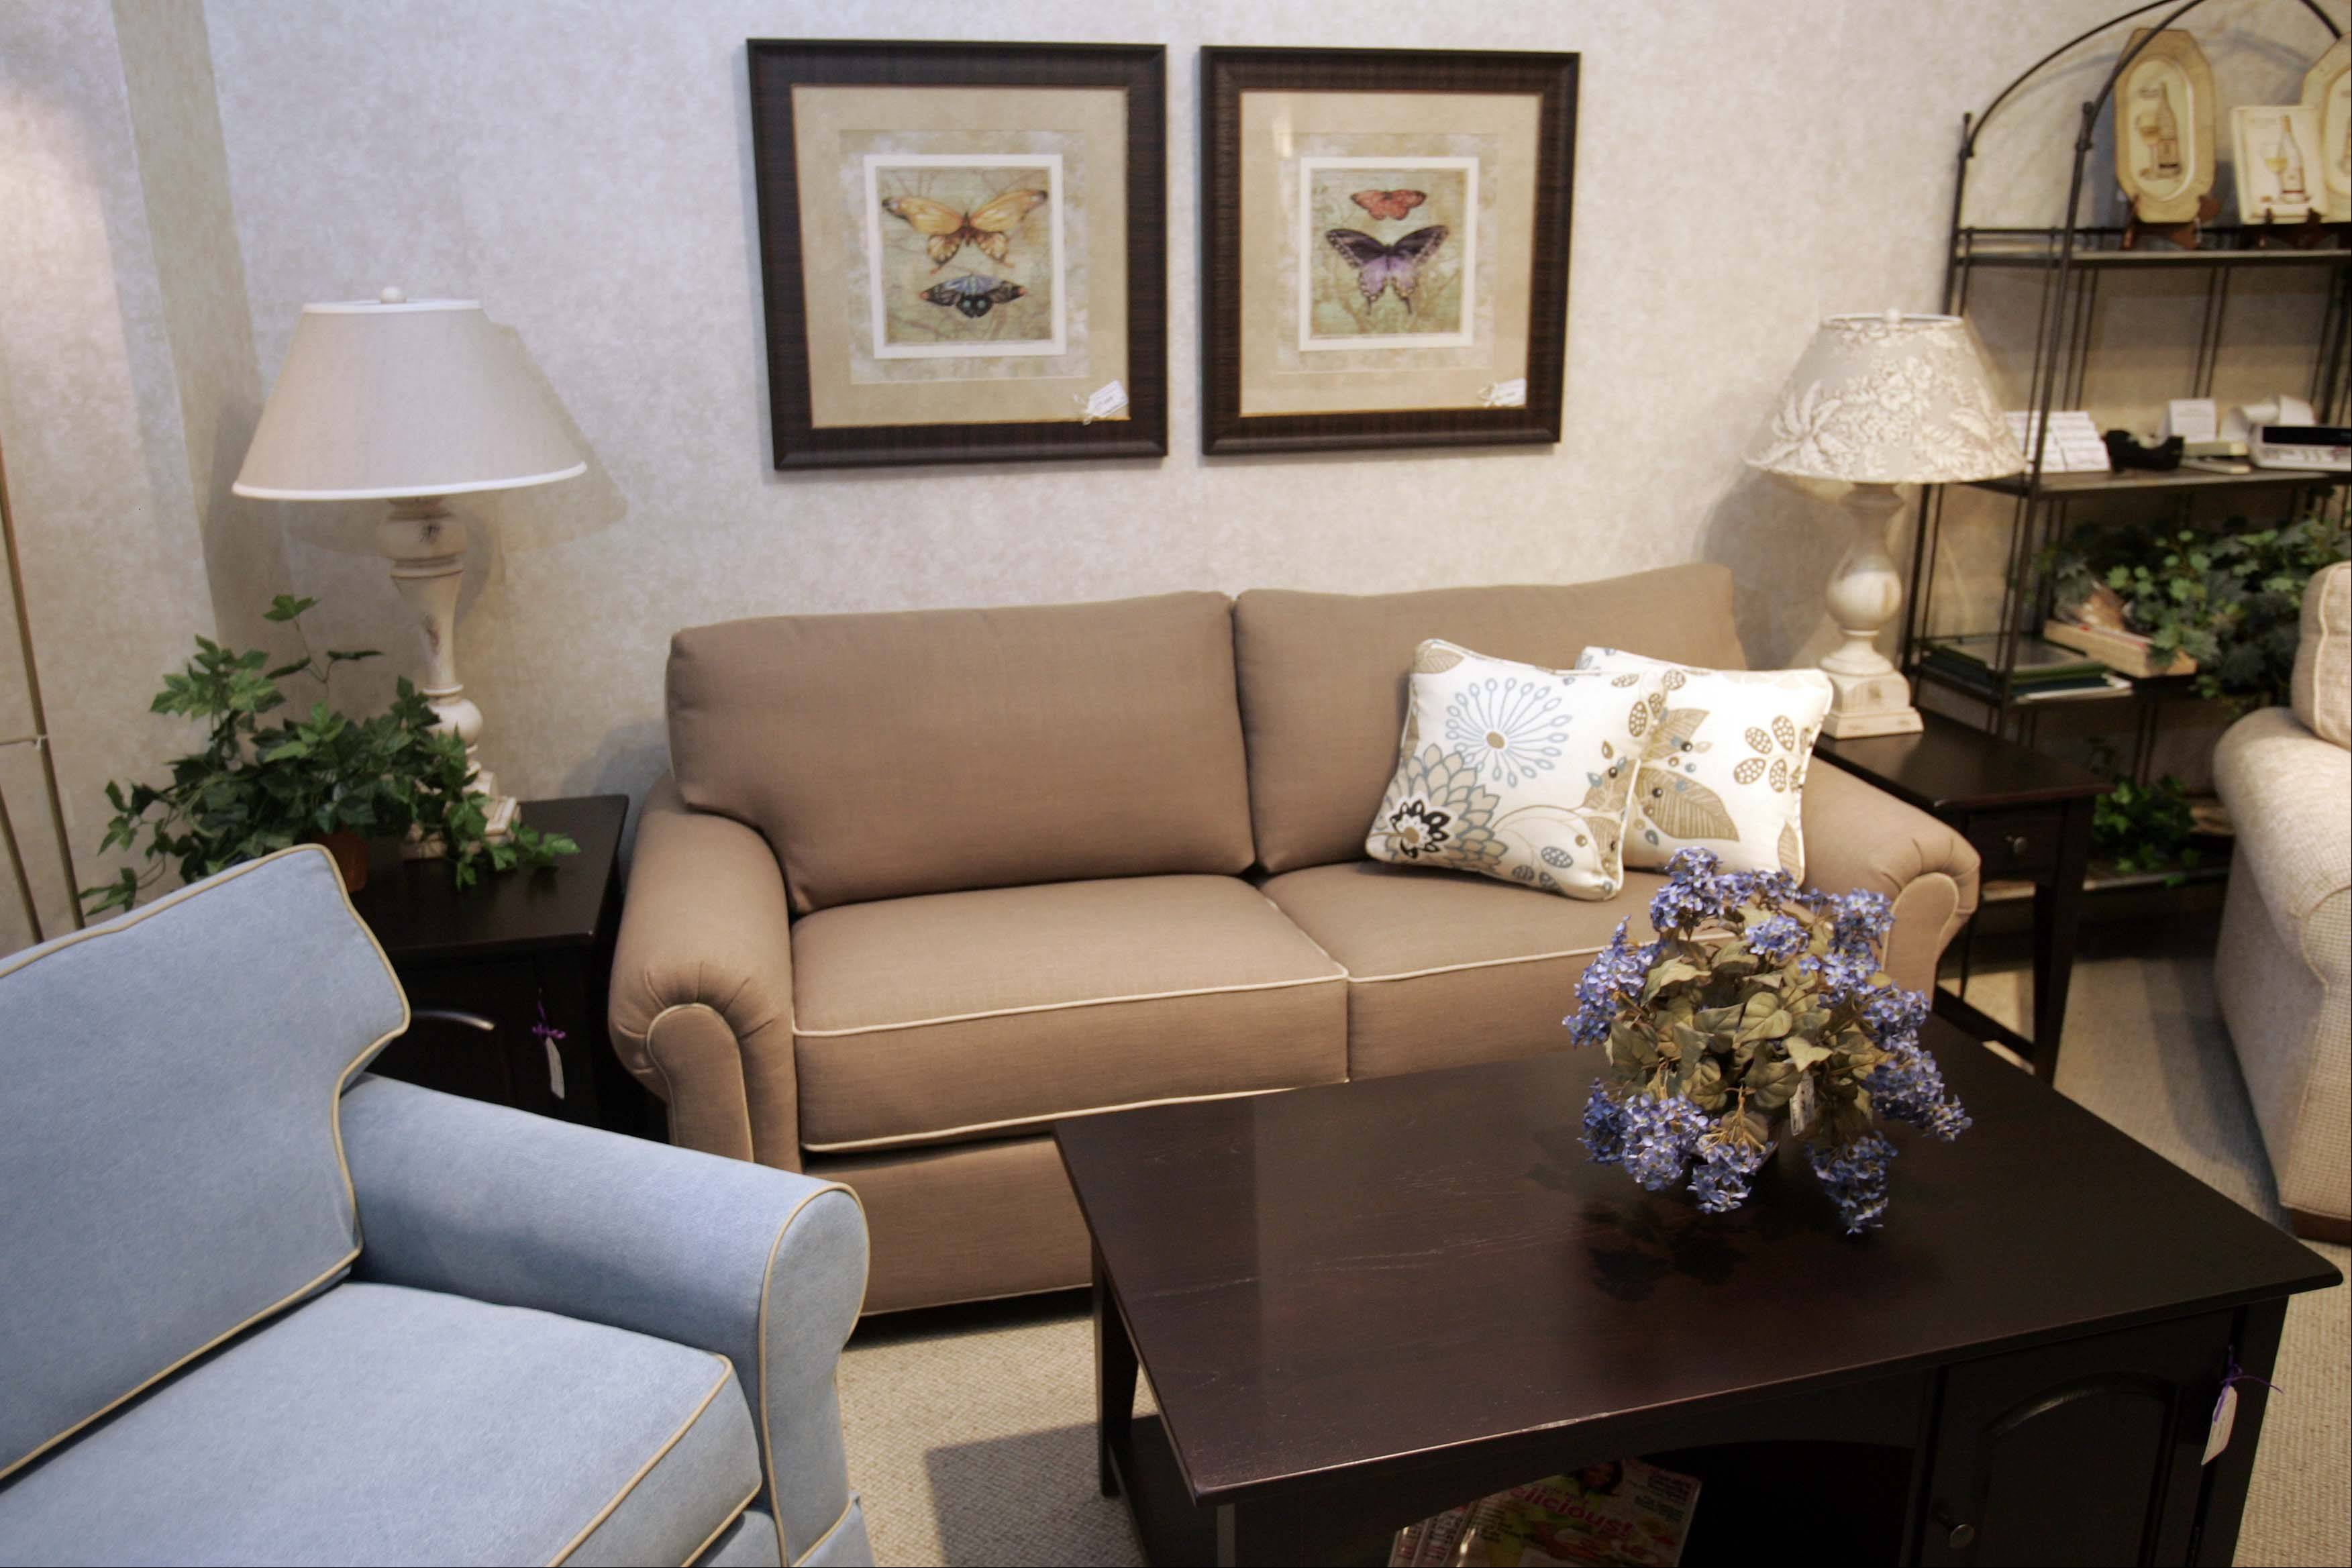 High Quality Dow Furniture In North Aurora Offers Some Compact Furniture For Older  Customers Downsizing Into Condos Or